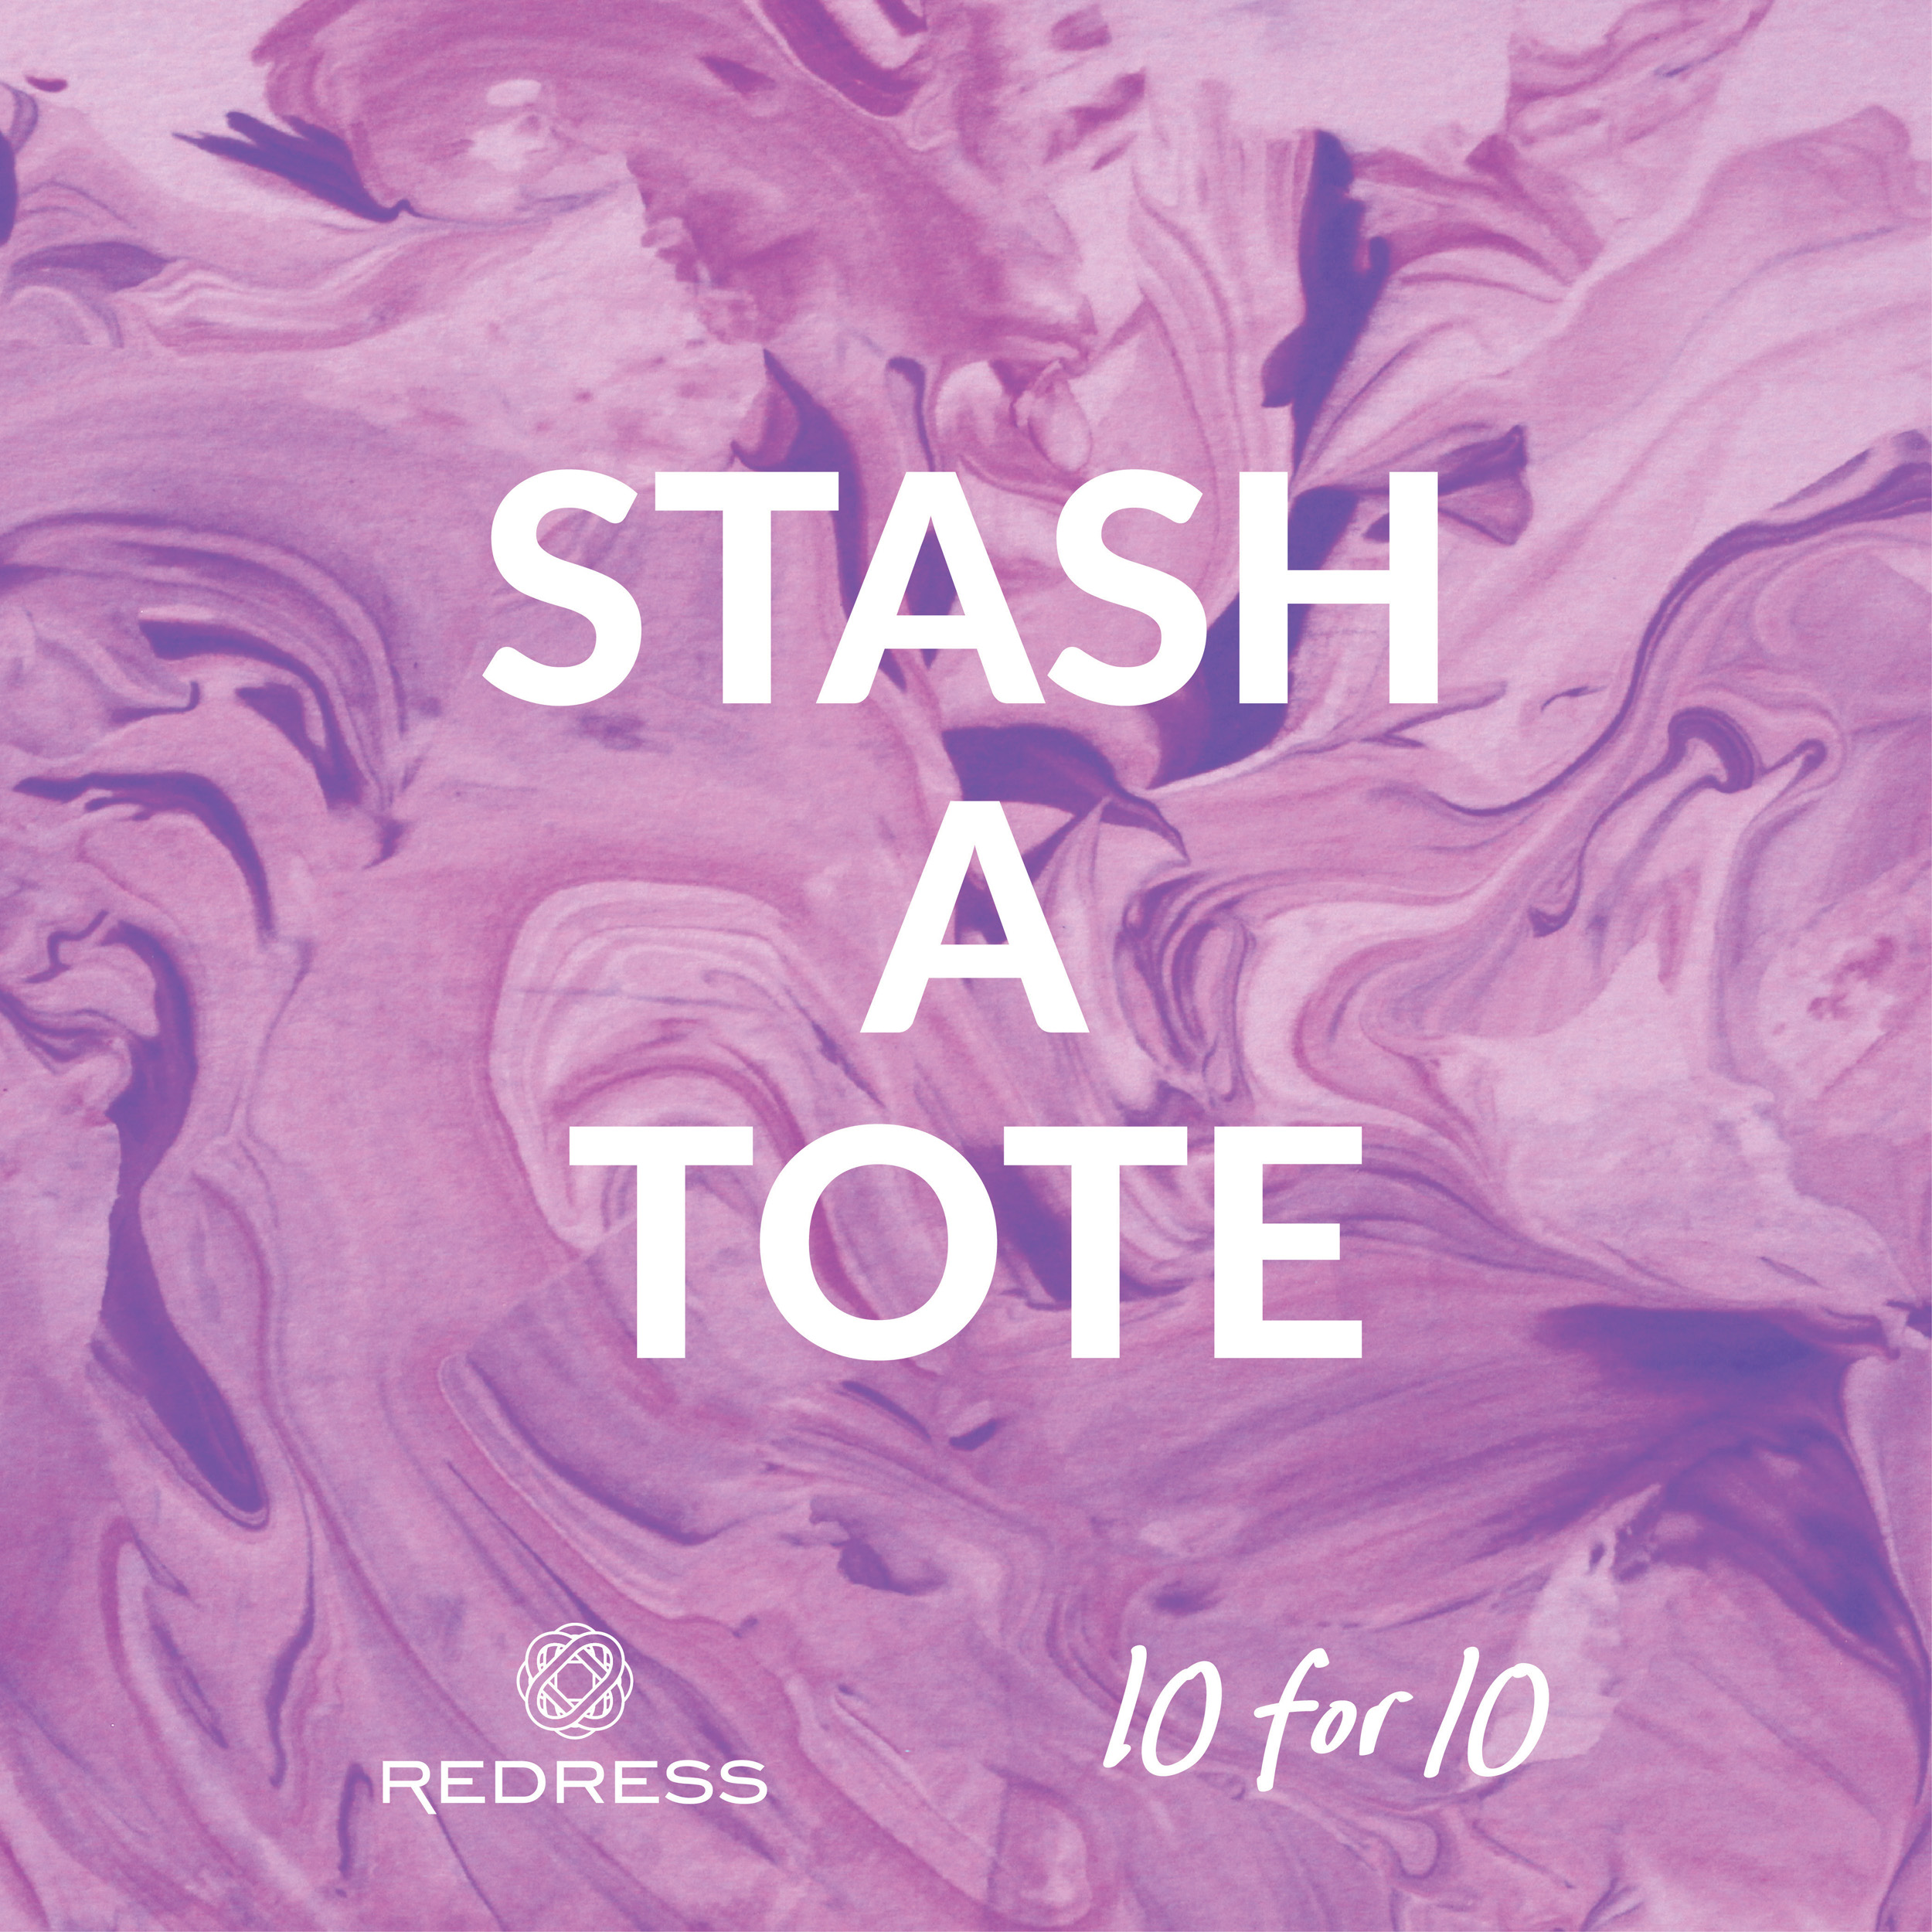 Redress 10for10 StashATote.jpg